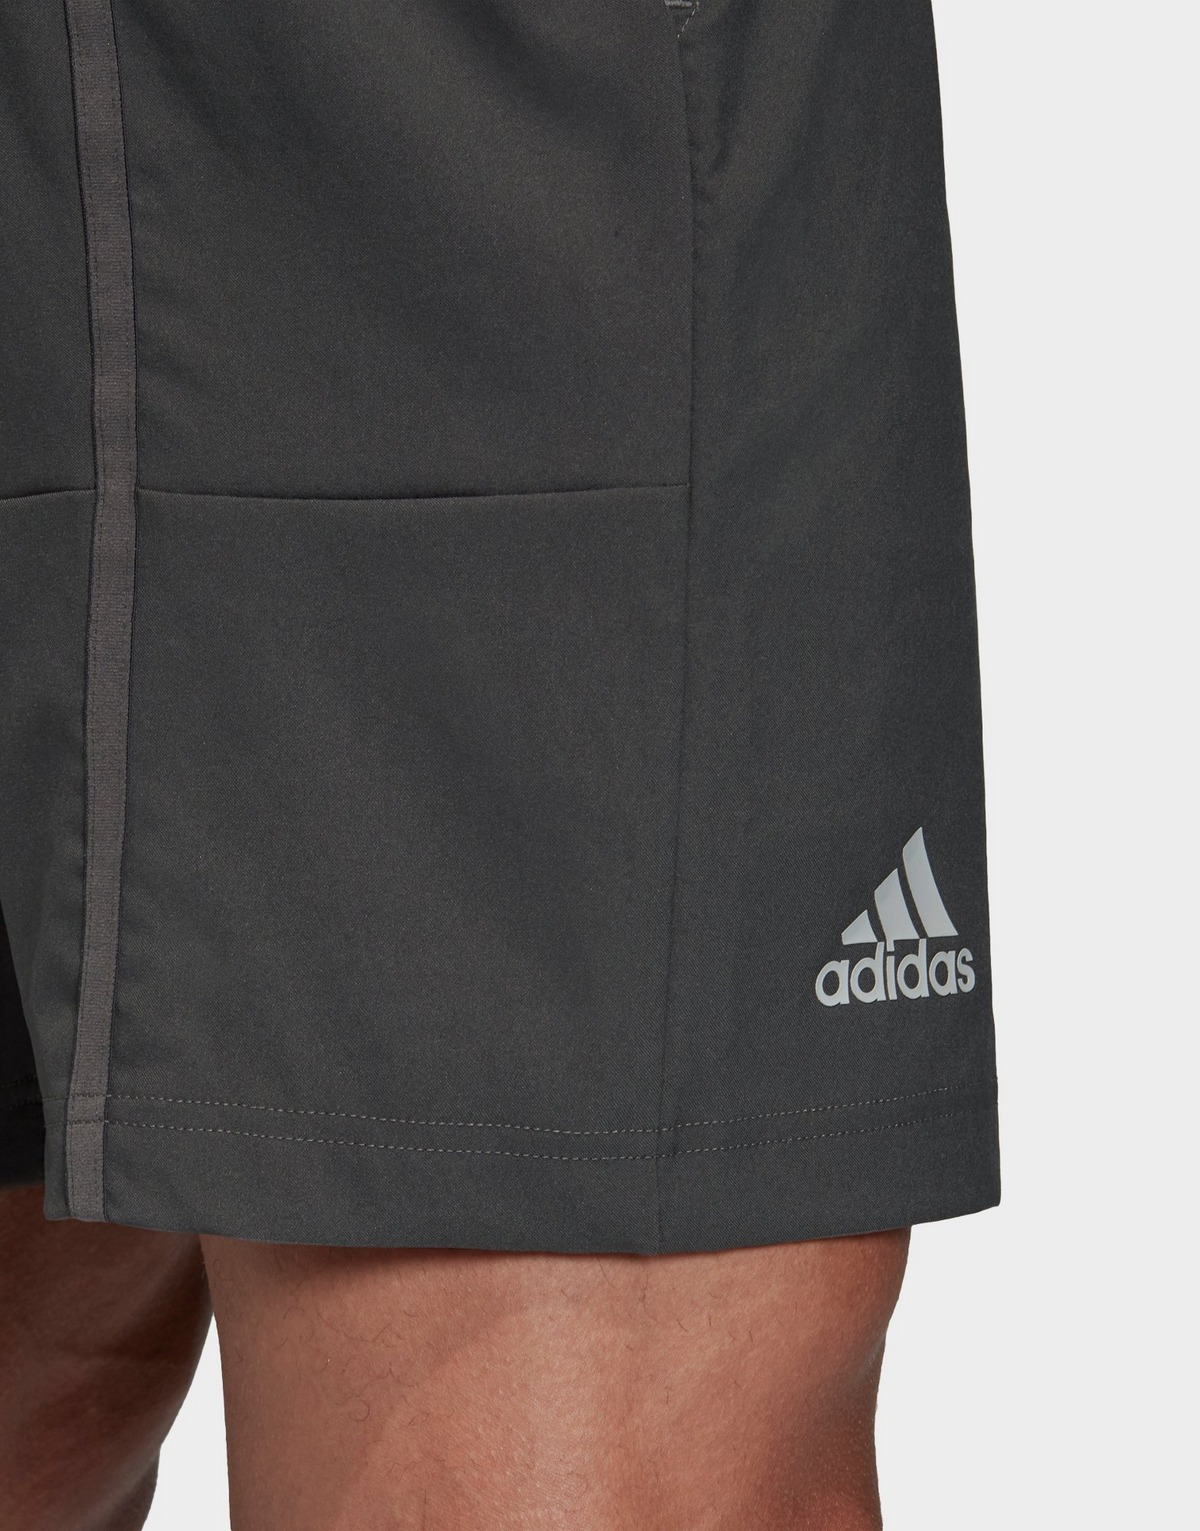 Adidas Performance Ergo Primeblue Shorts